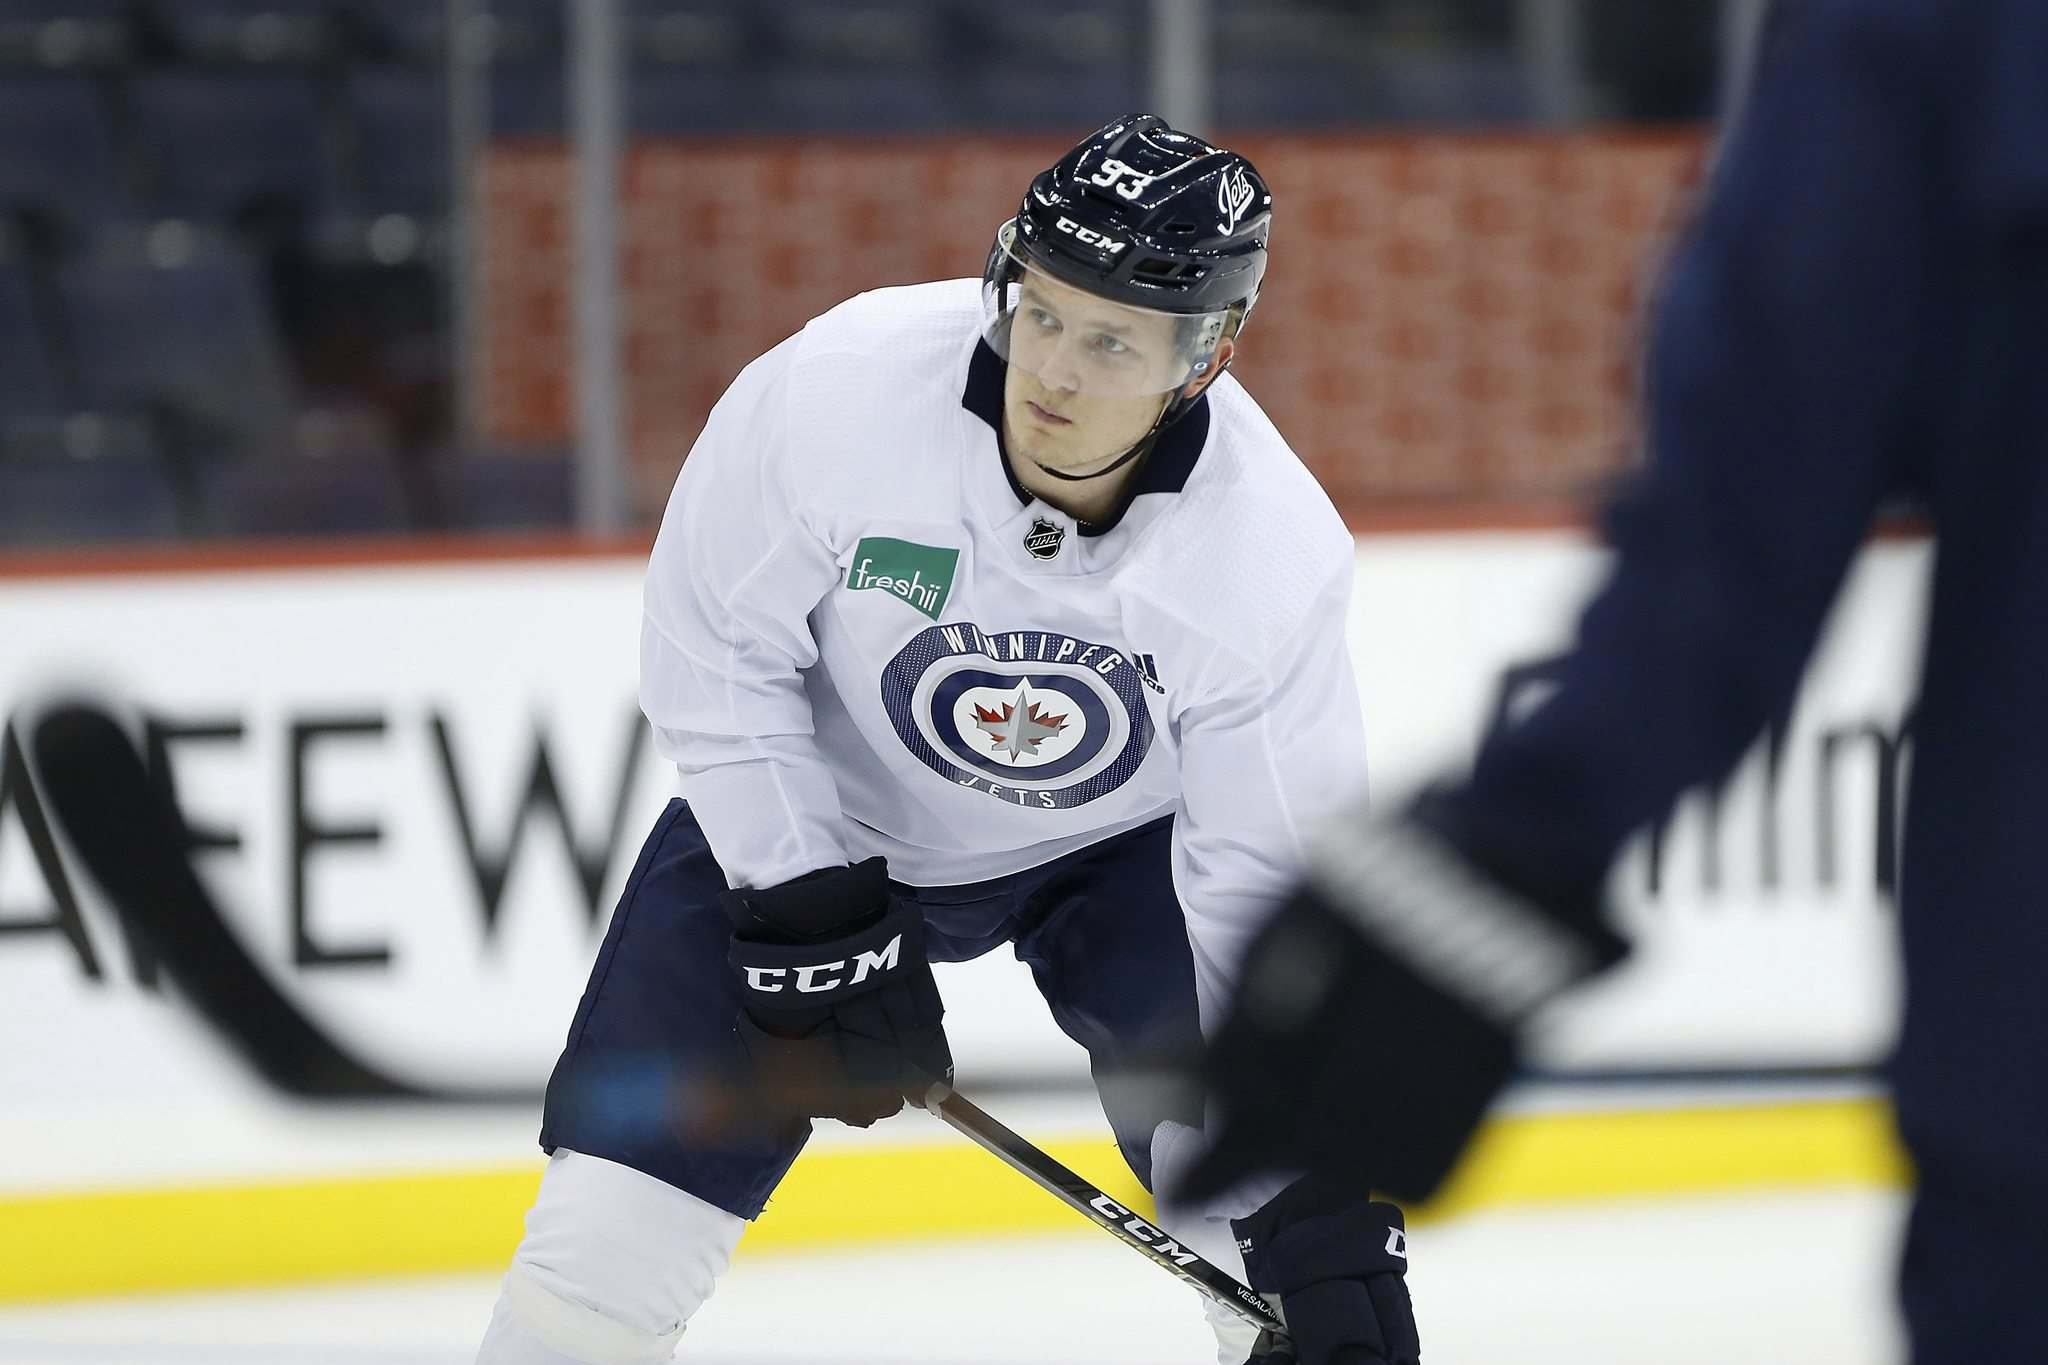 Winnipeg Jets' Kristian Vesalainen will be playing for Jokerit of the KHL in Helsinki, Finland.